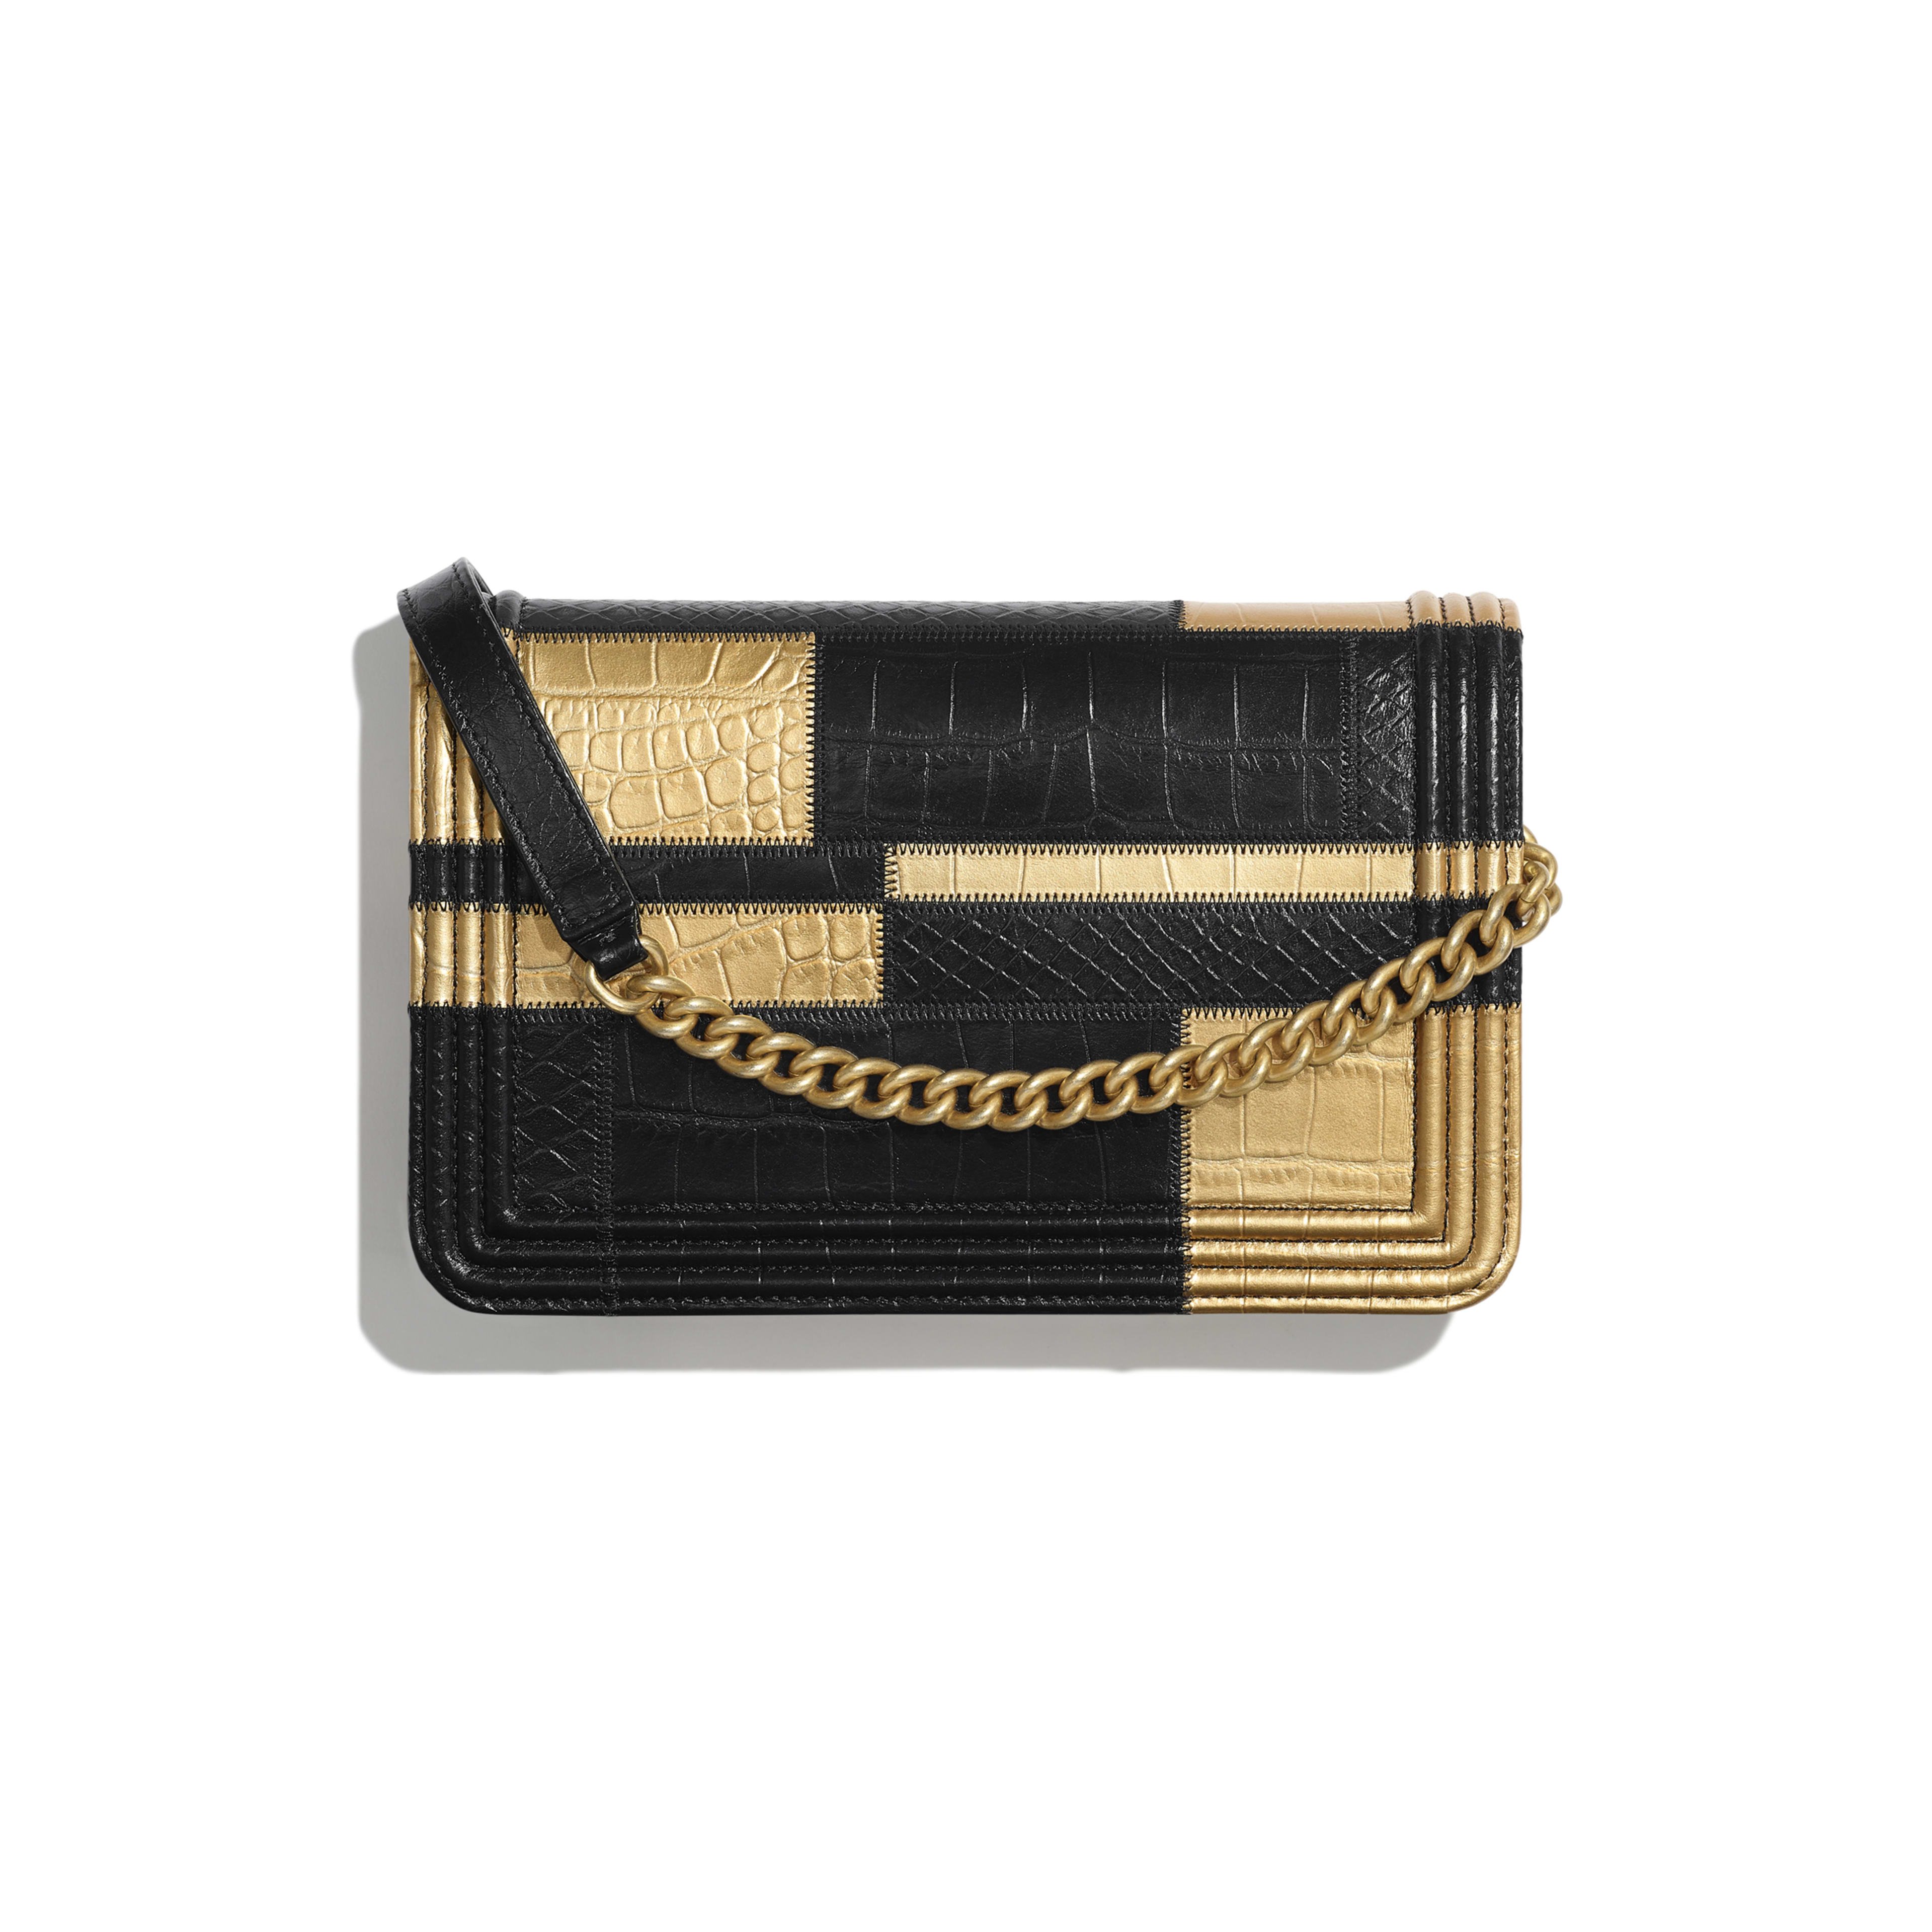 BOY CHANEL Wallet on Chain - Black & Gold - Crocodile Embossed Calfskin, Python Embossed Calfskin & Gold-Tone Metal - Alternative view - see full sized version